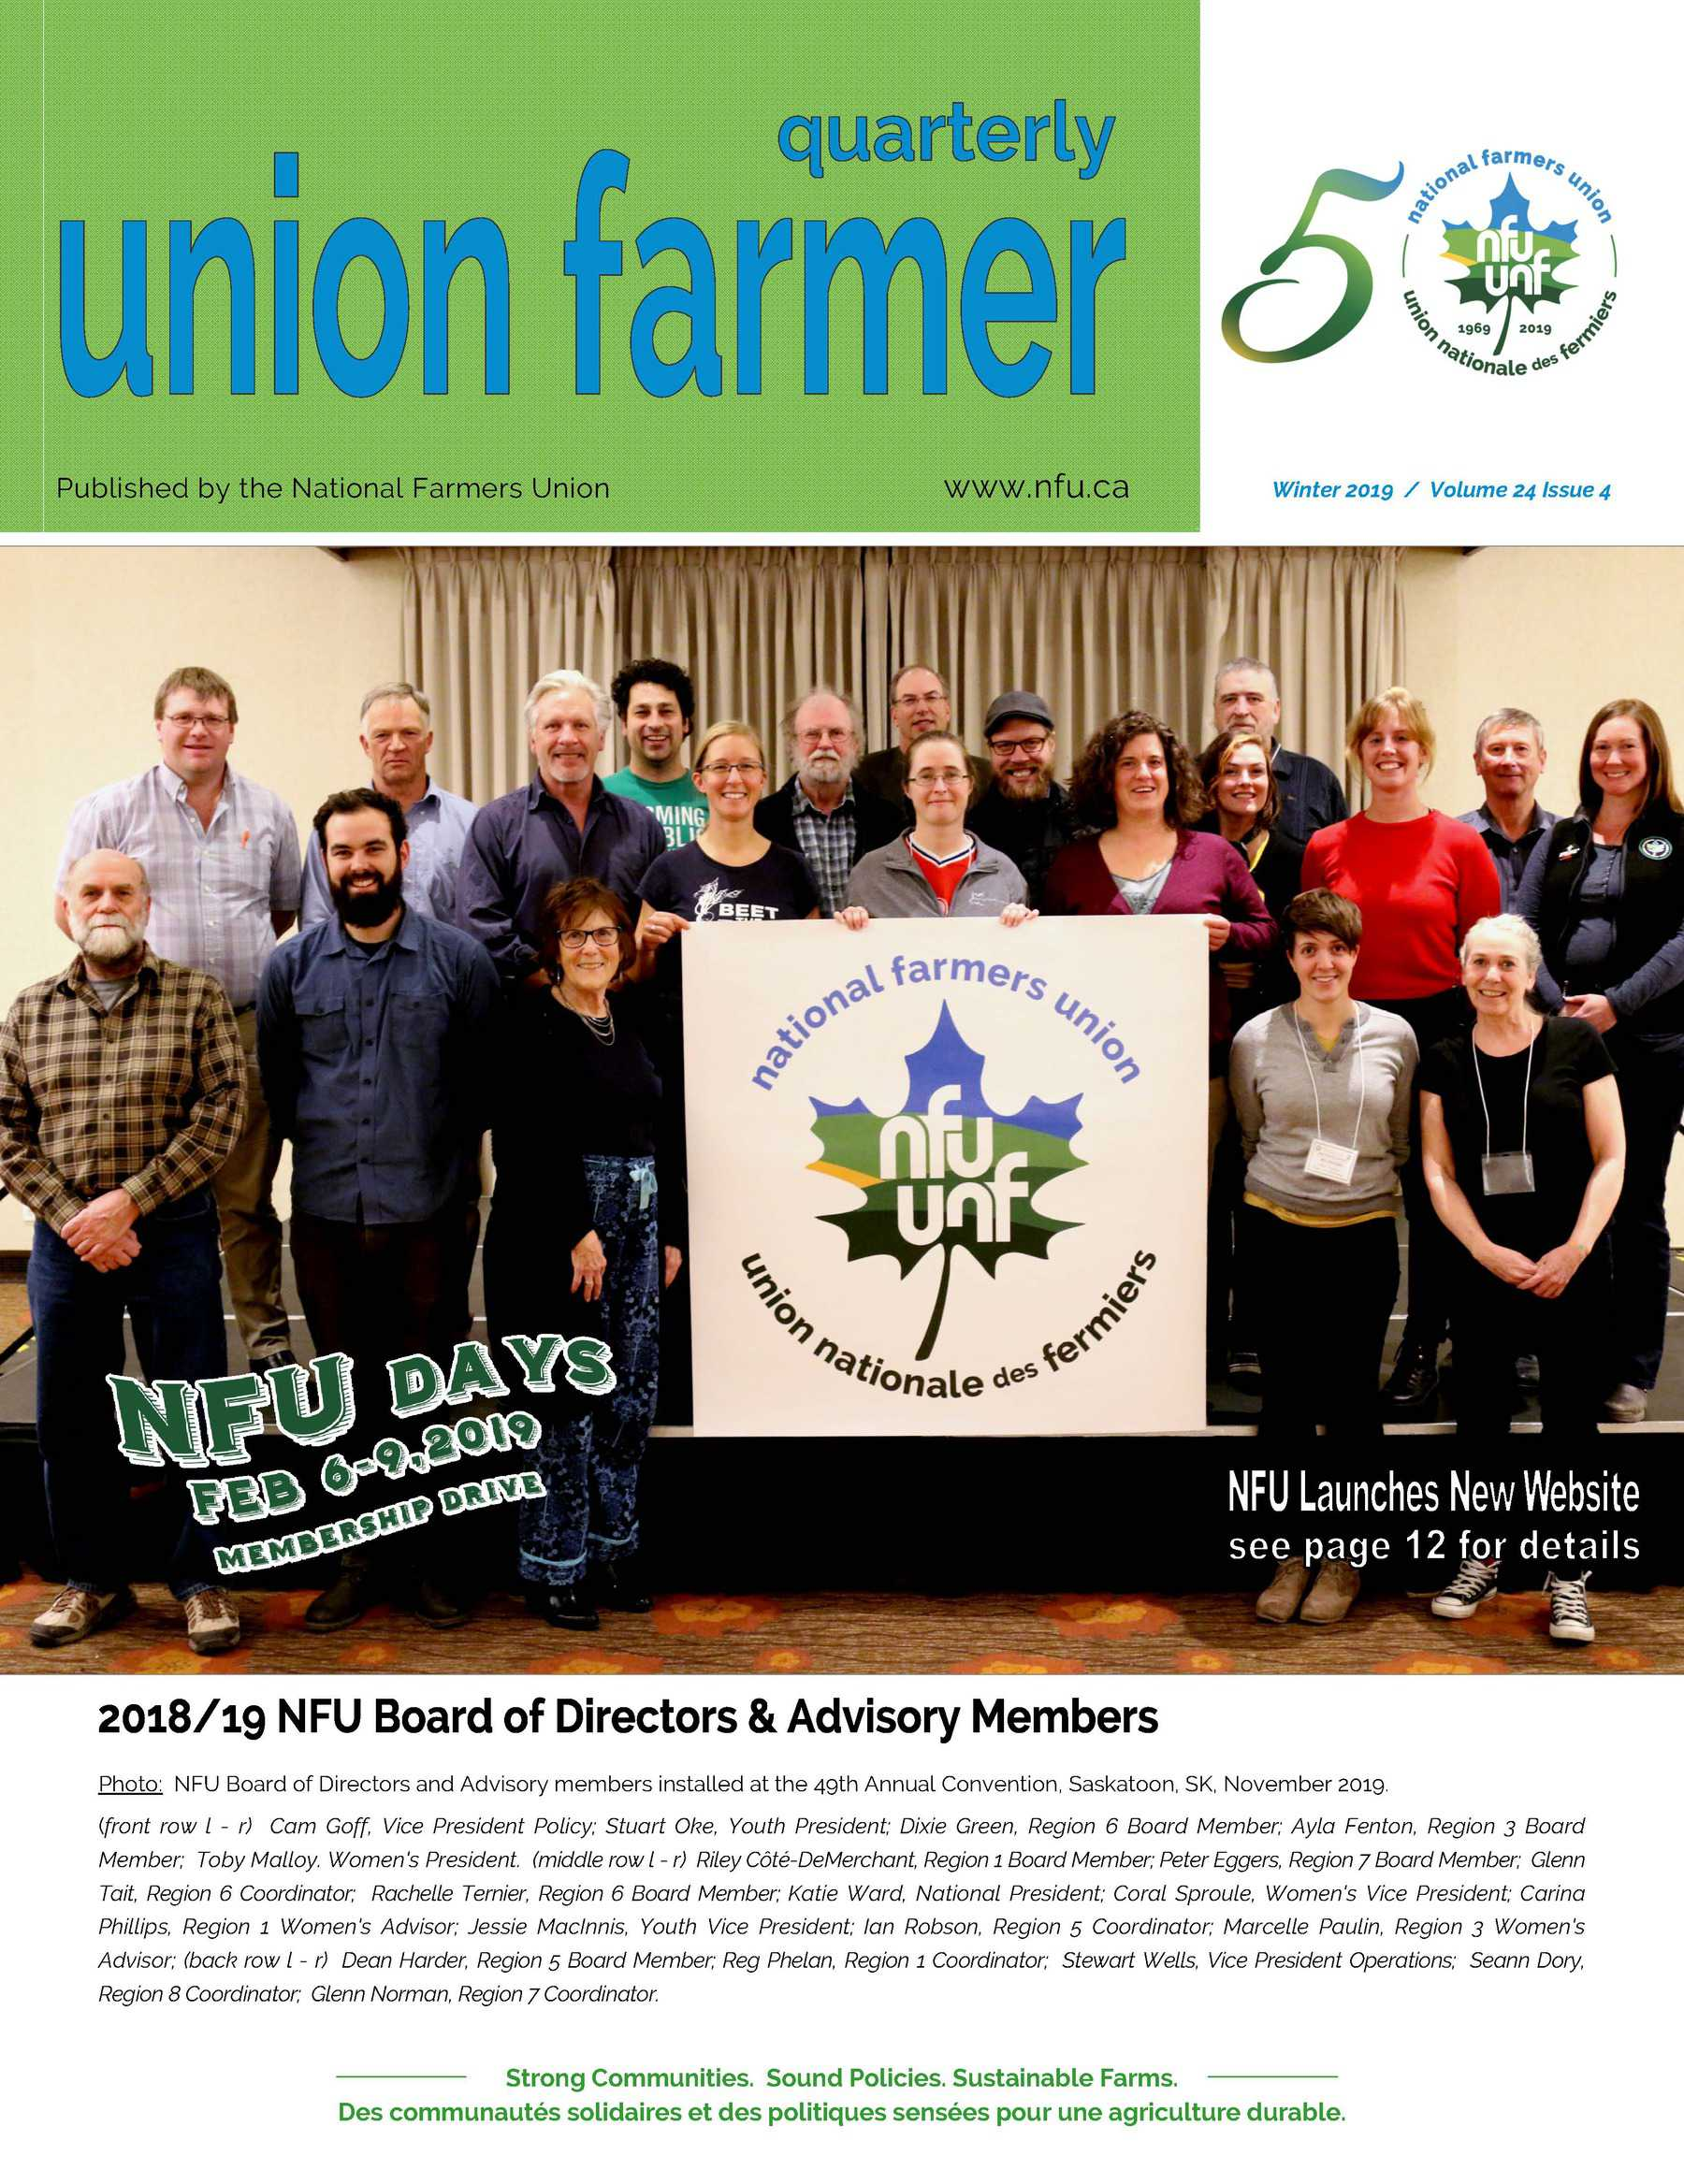 Union Farmer Quarterly: Winter 2019